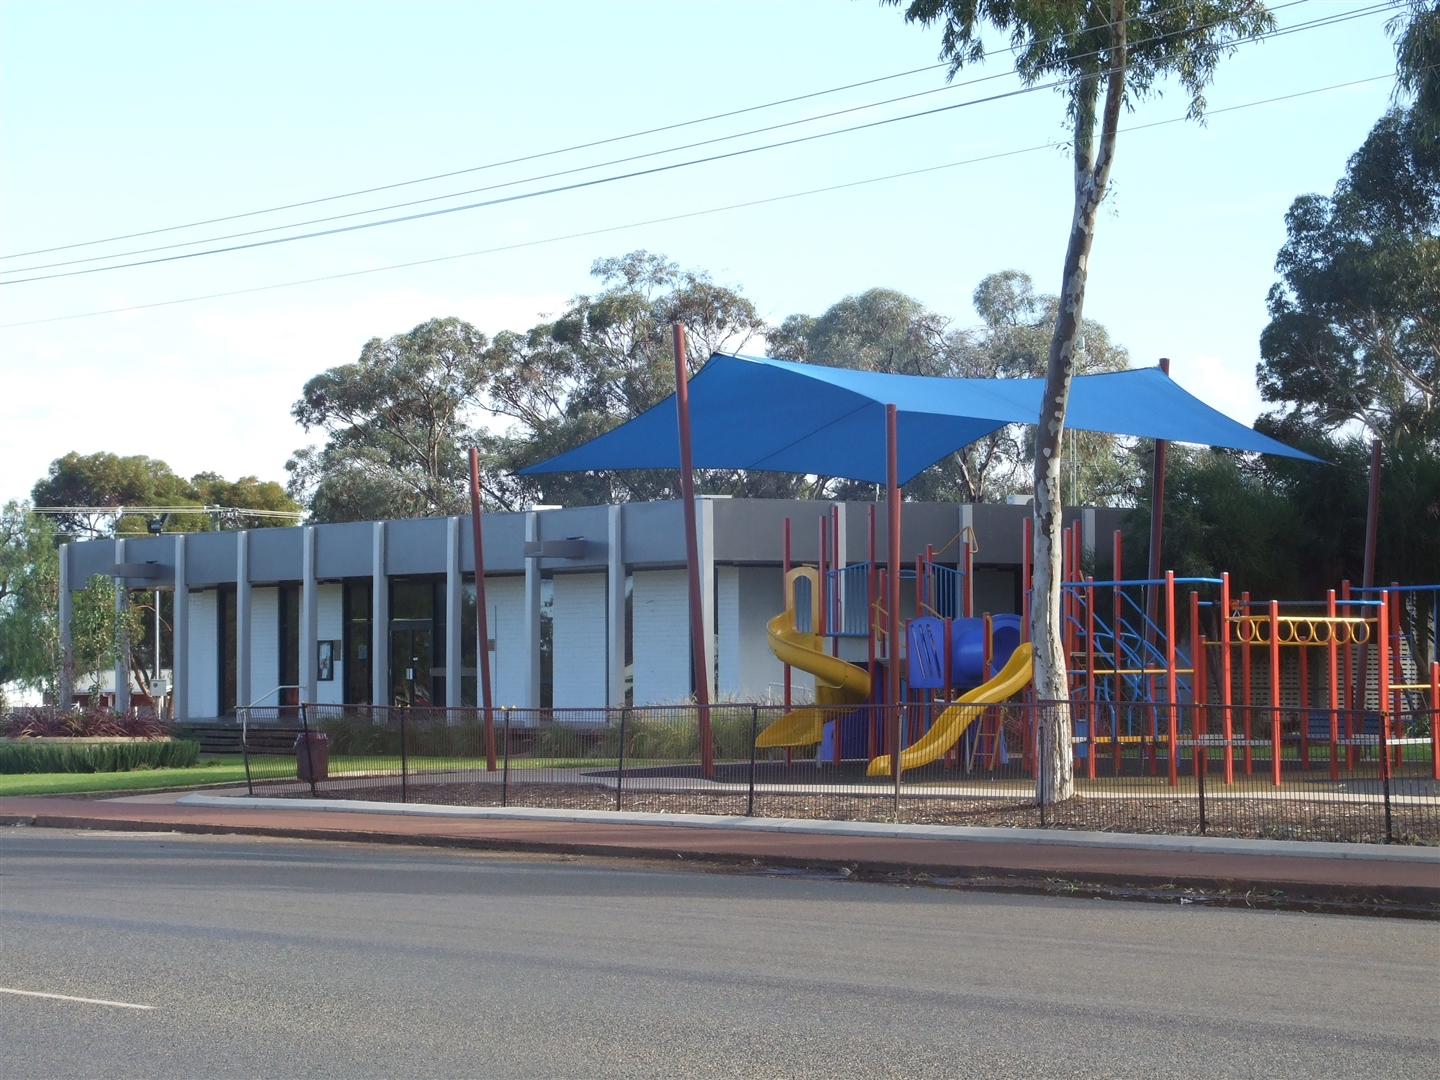 Image: Coolgardie Shire Office and Coolgardie Park